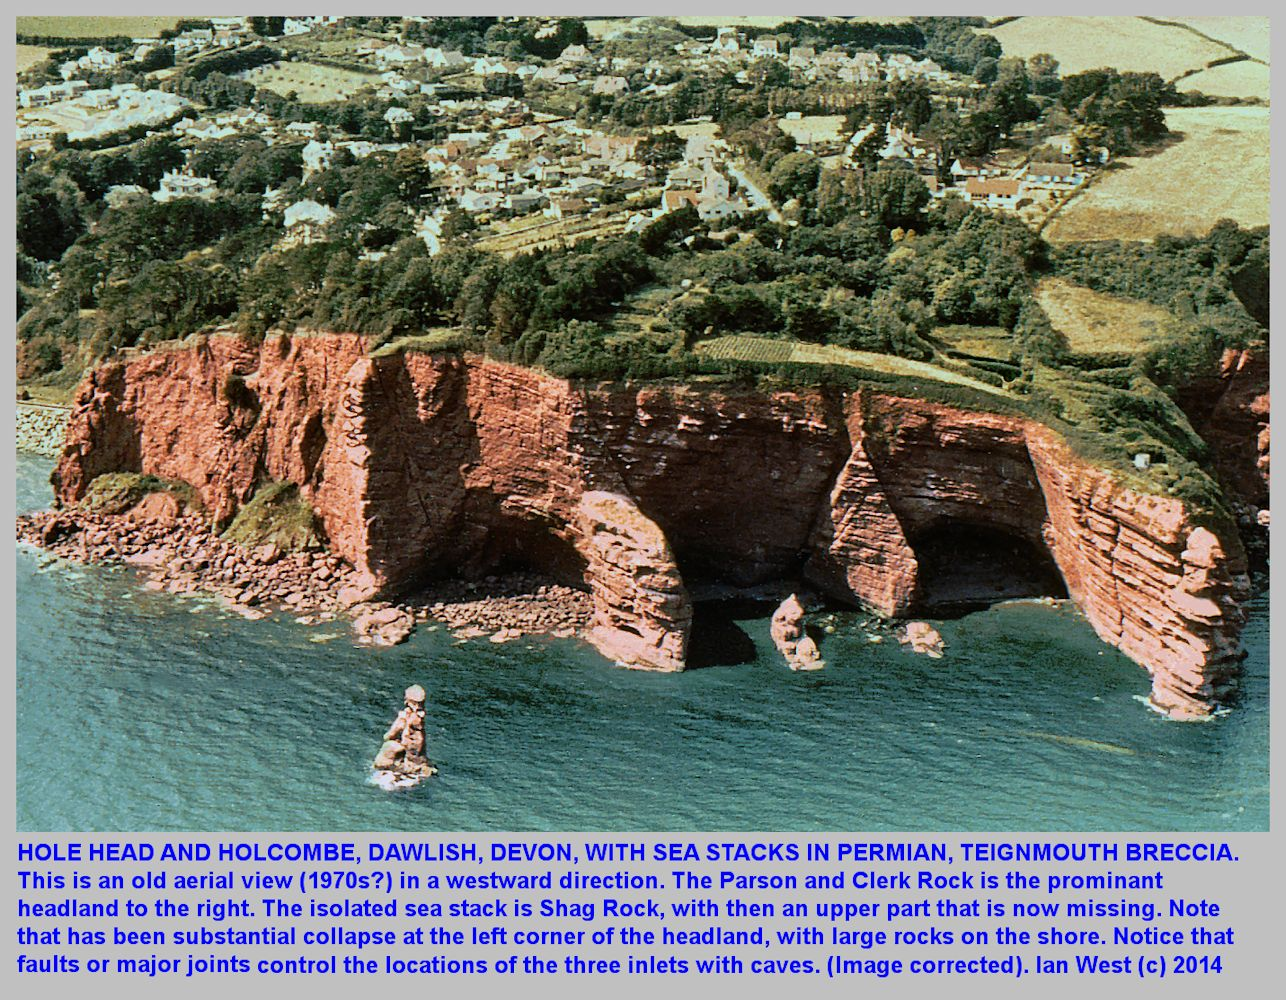 Hole Head with the Parson and Clerk stack, Holcombe south of Dawlish, Devon, oblique aerial view, old photograph